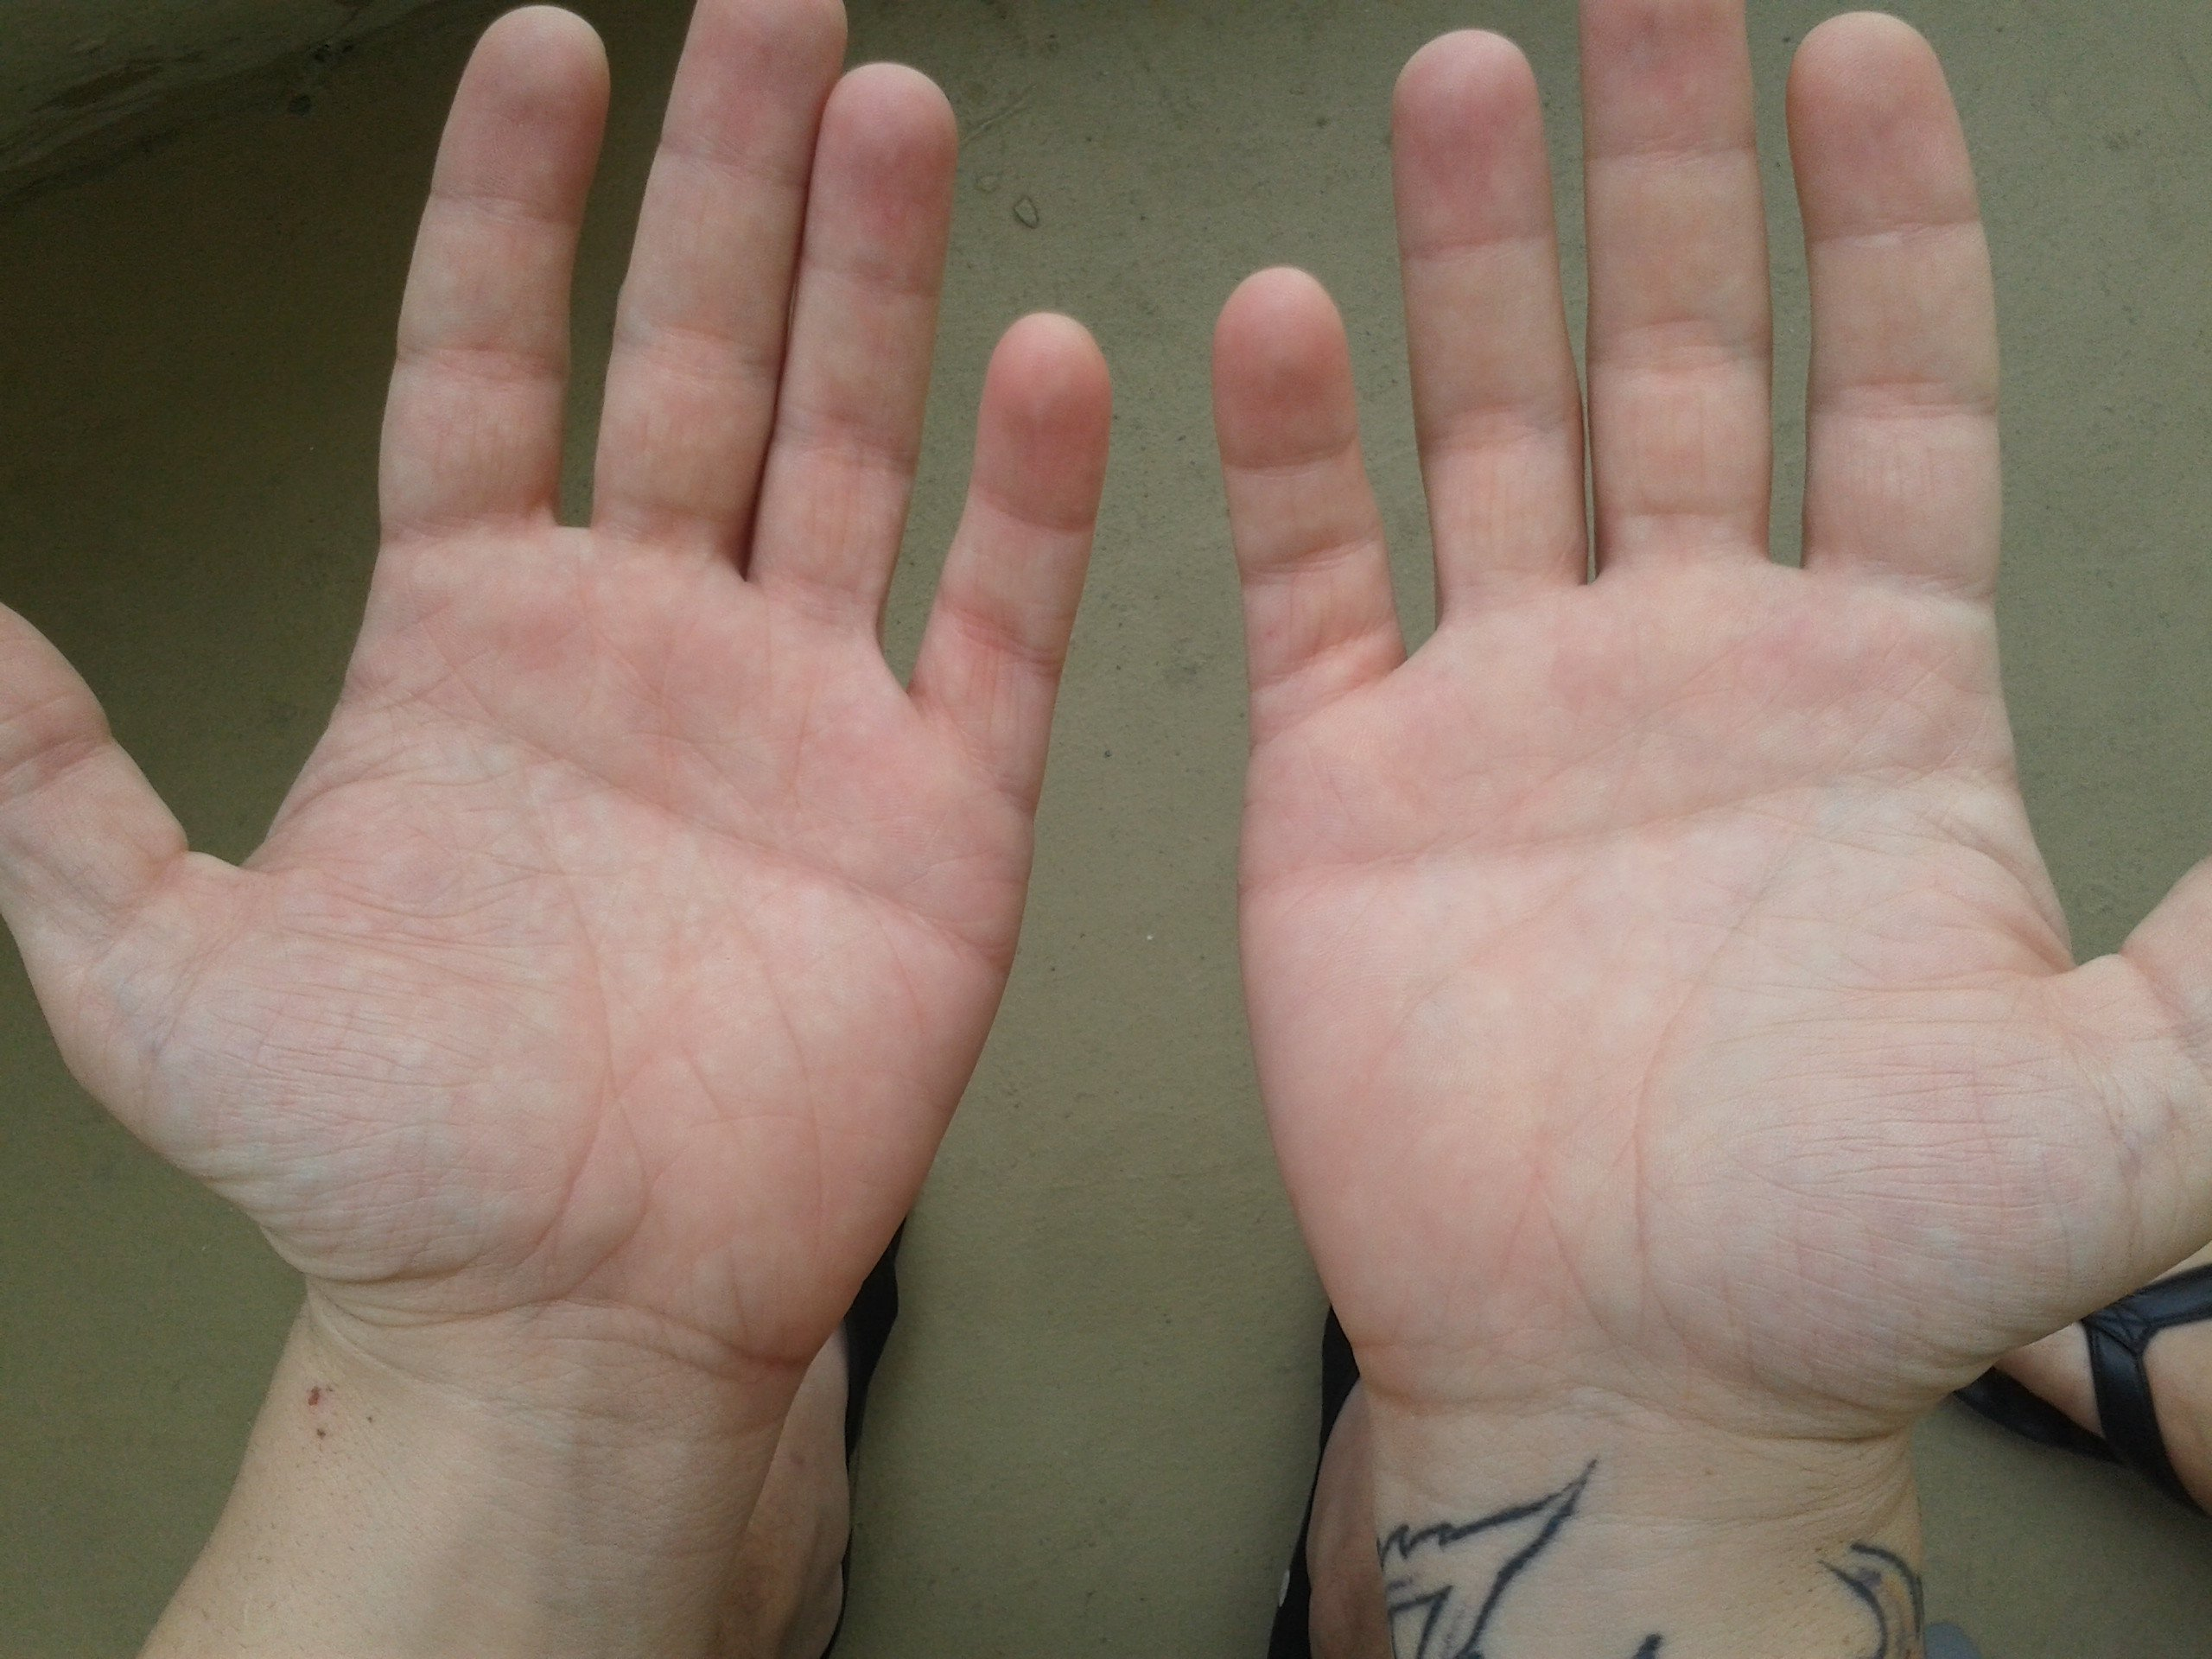 If You Have A Half Moon On Your Palms This Is What It Apparently Means